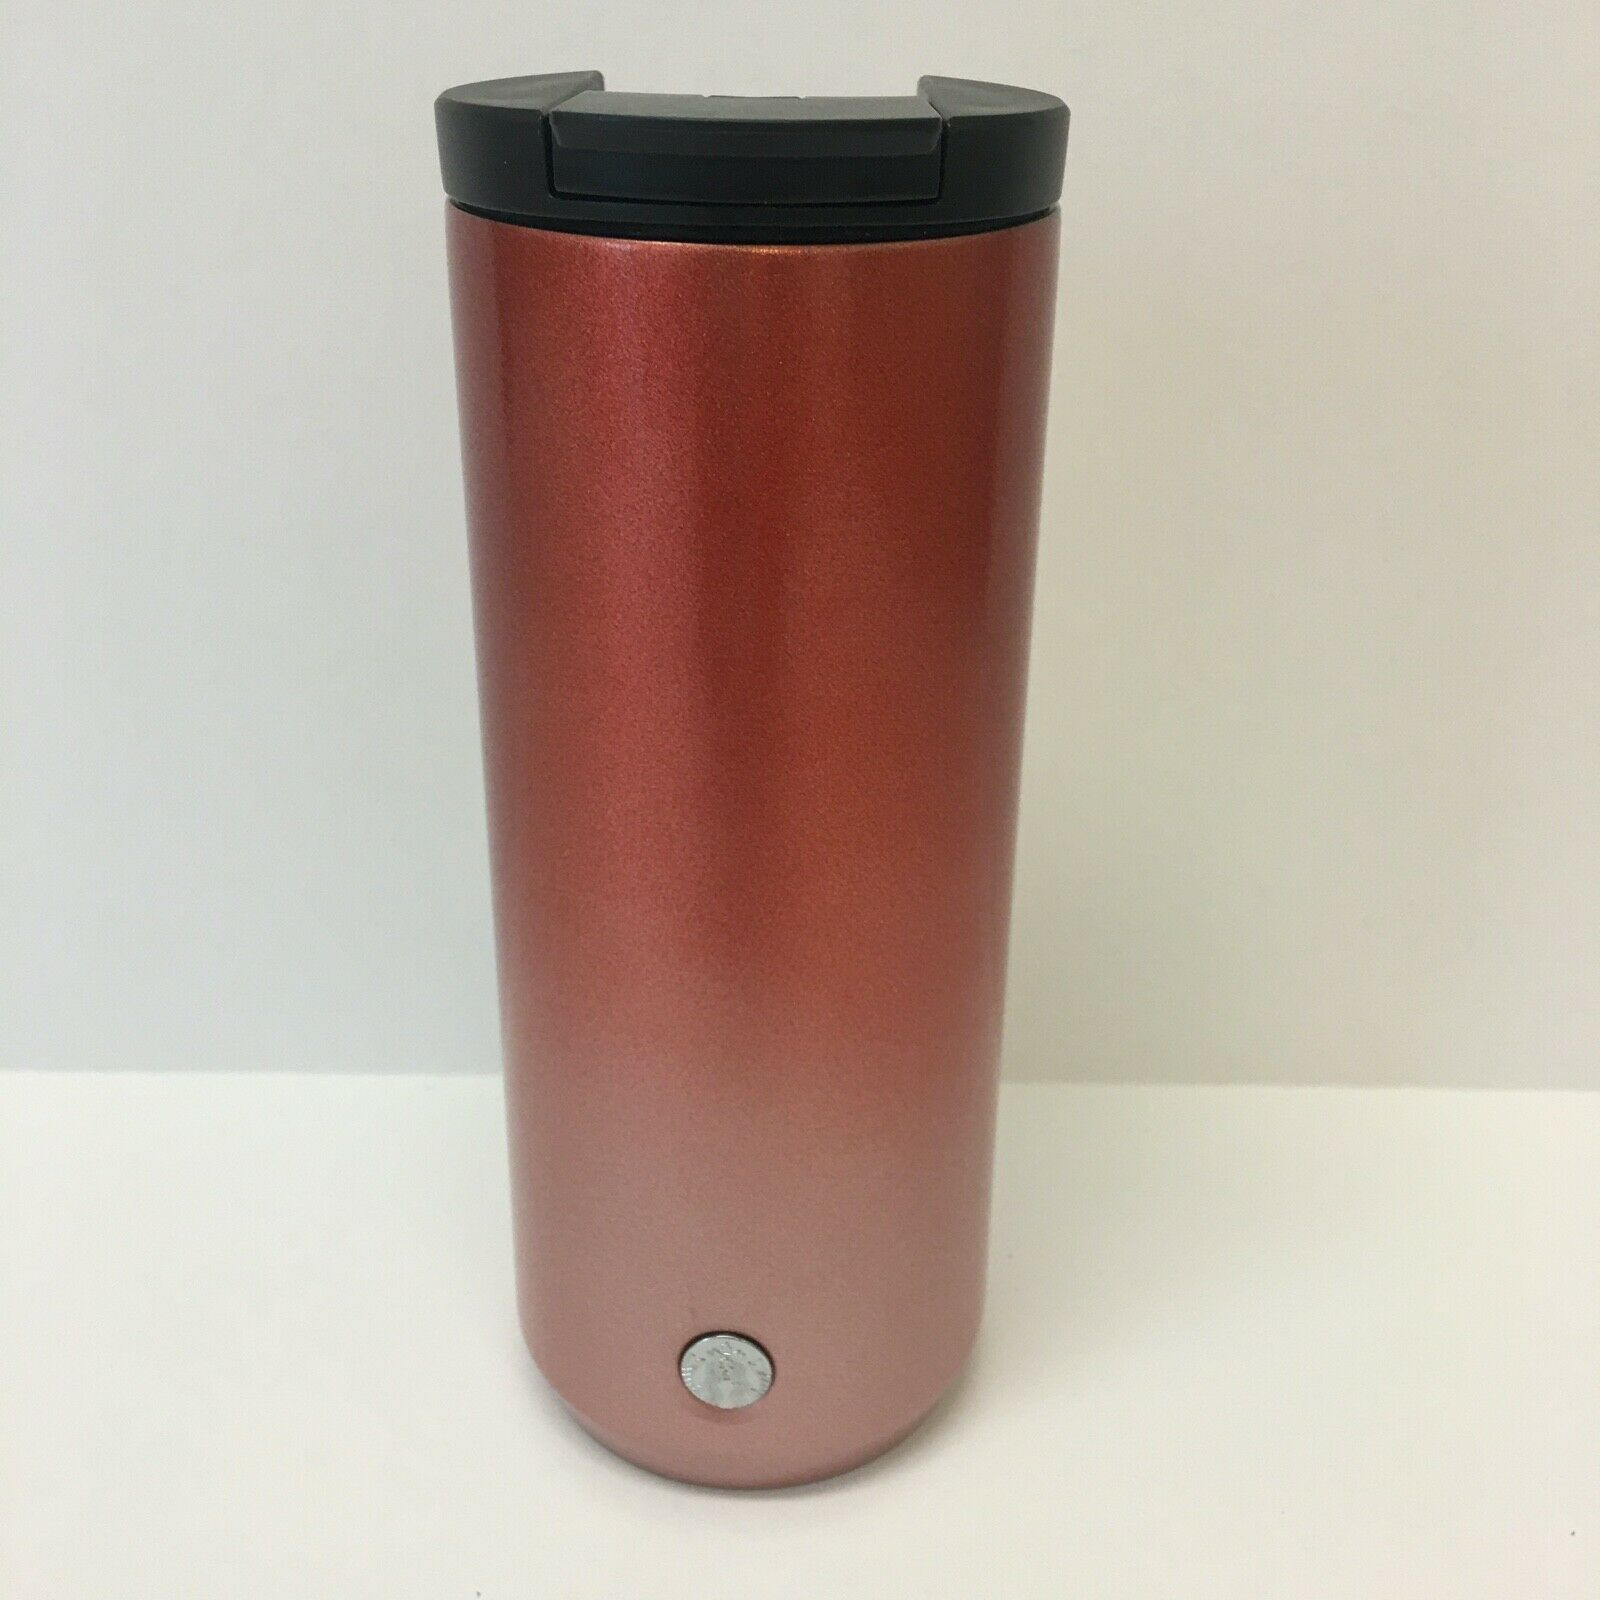 Primary image for Starbucks 2020 Red Ombre Sparkle Vacuum Insulated Stainless Steel Tumbler 12 oz